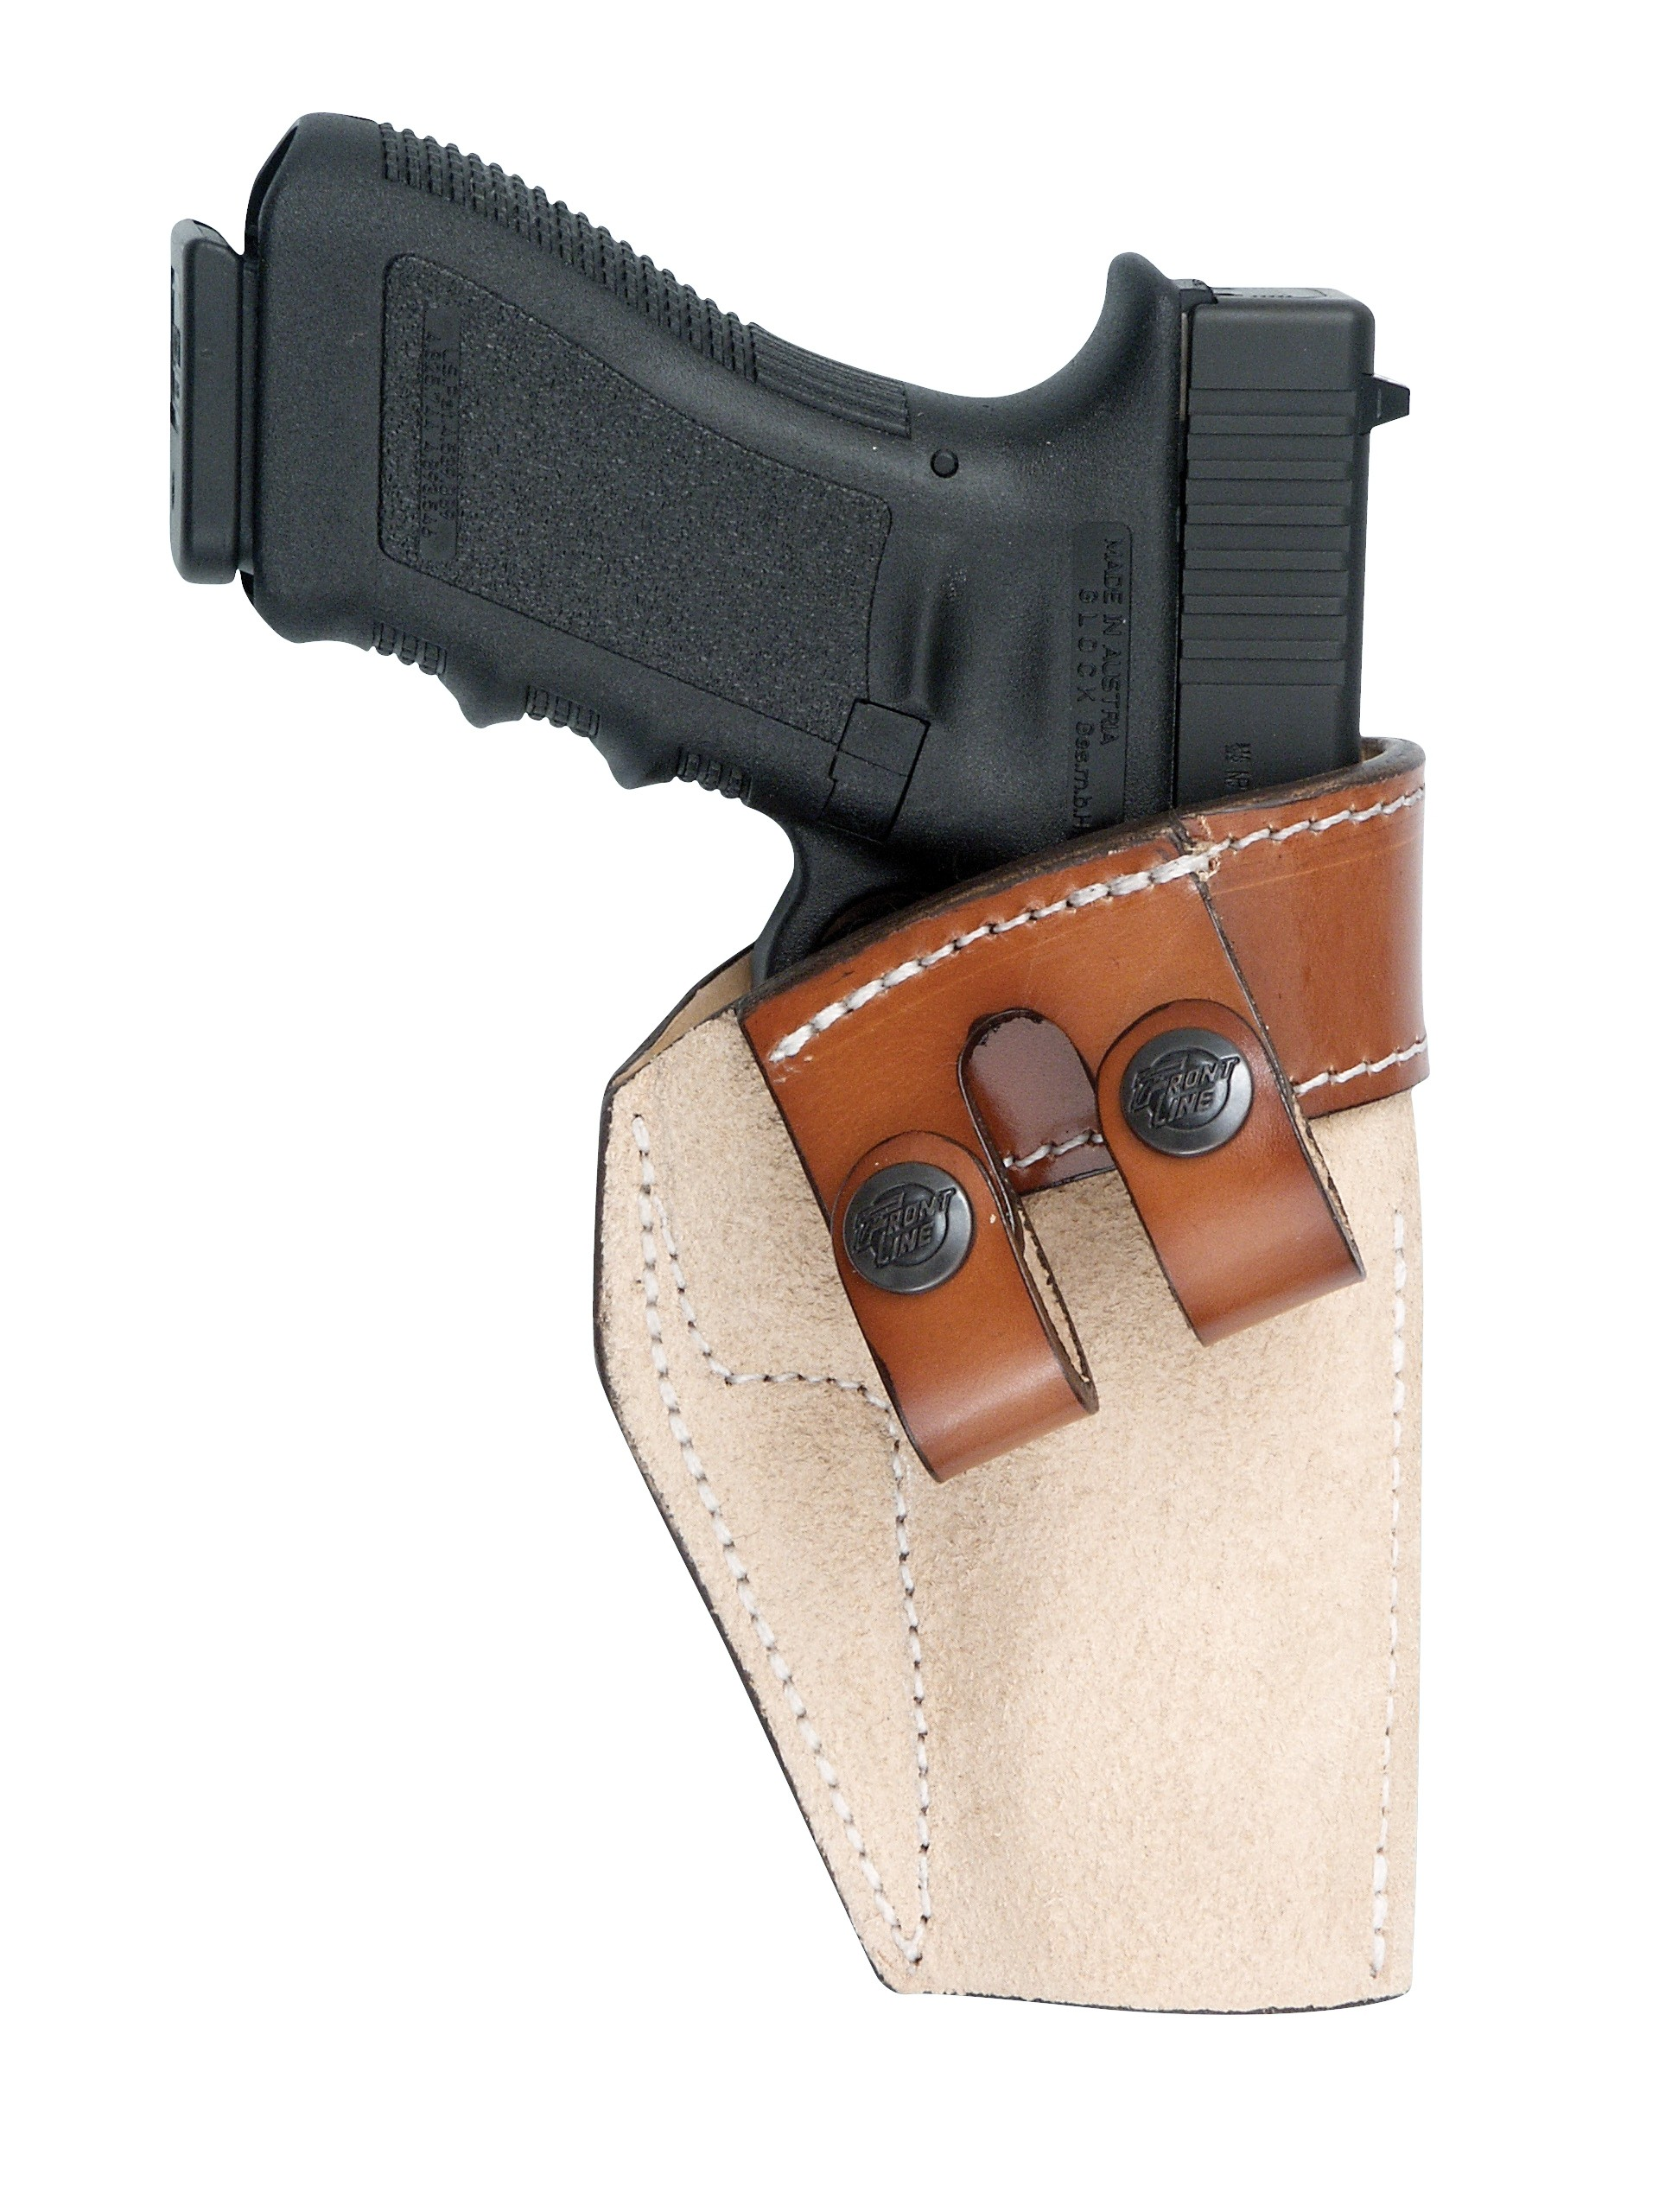 Front Line Holsters: Buy Custom-Made Premium Holsters